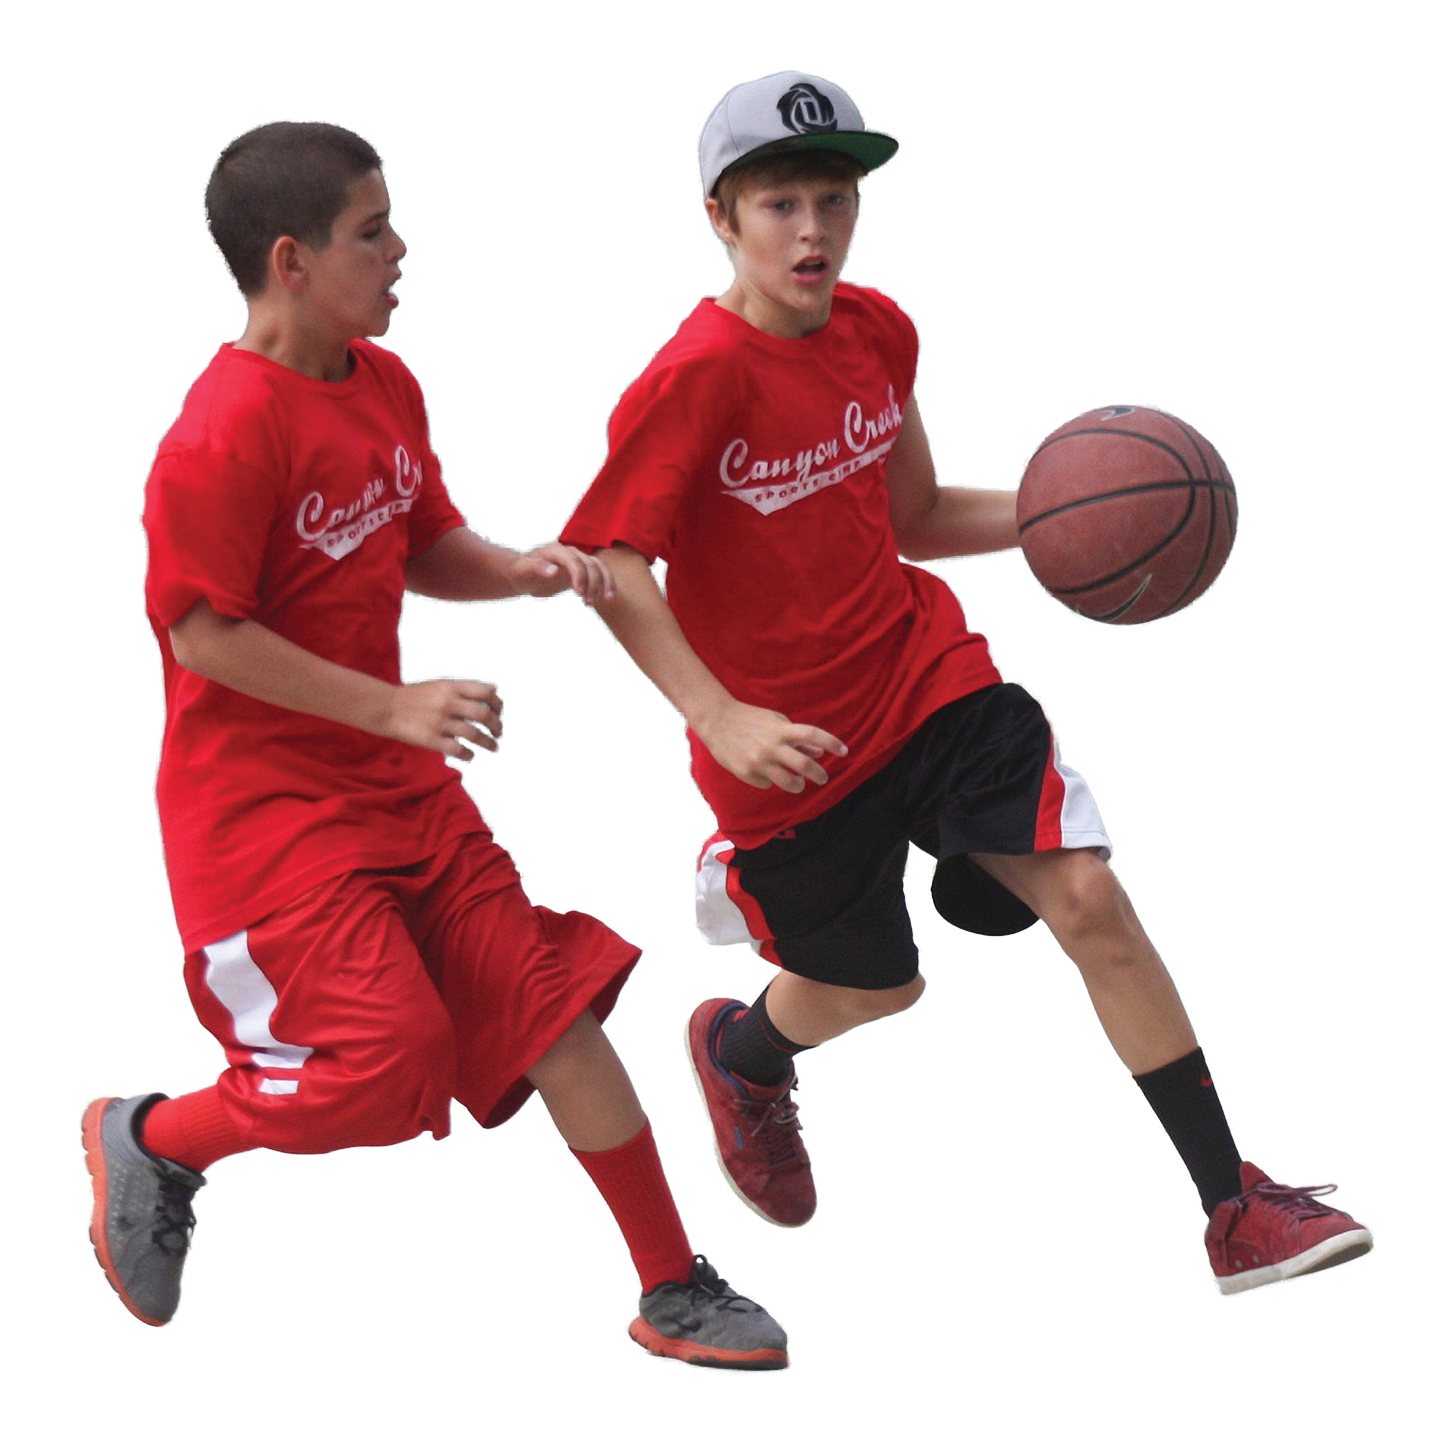 Basketball player doing a layup clipart image library library Basketball Game PNG Transparent Basketball Game.PNG Images. | PlusPNG image library library